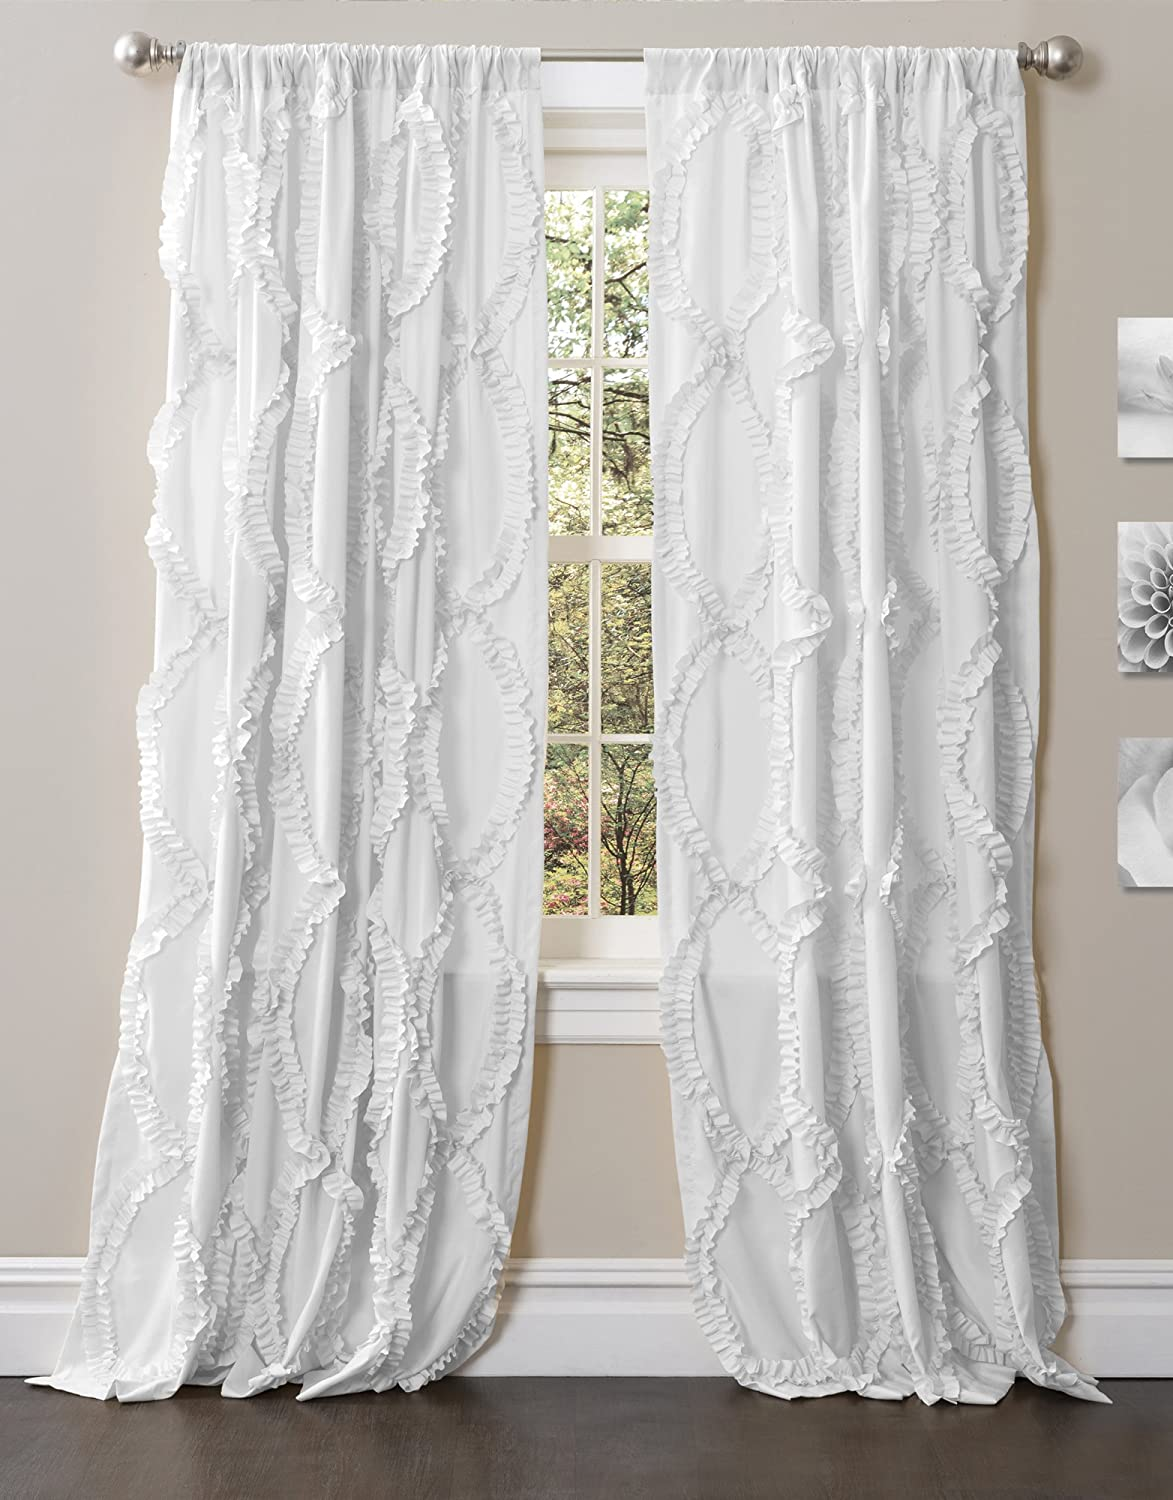 "Lush Decor Avon Window Curtain Panel for Living Room, Dining Room, Bedroom (Single Curtain), 84"" x 54"", White"